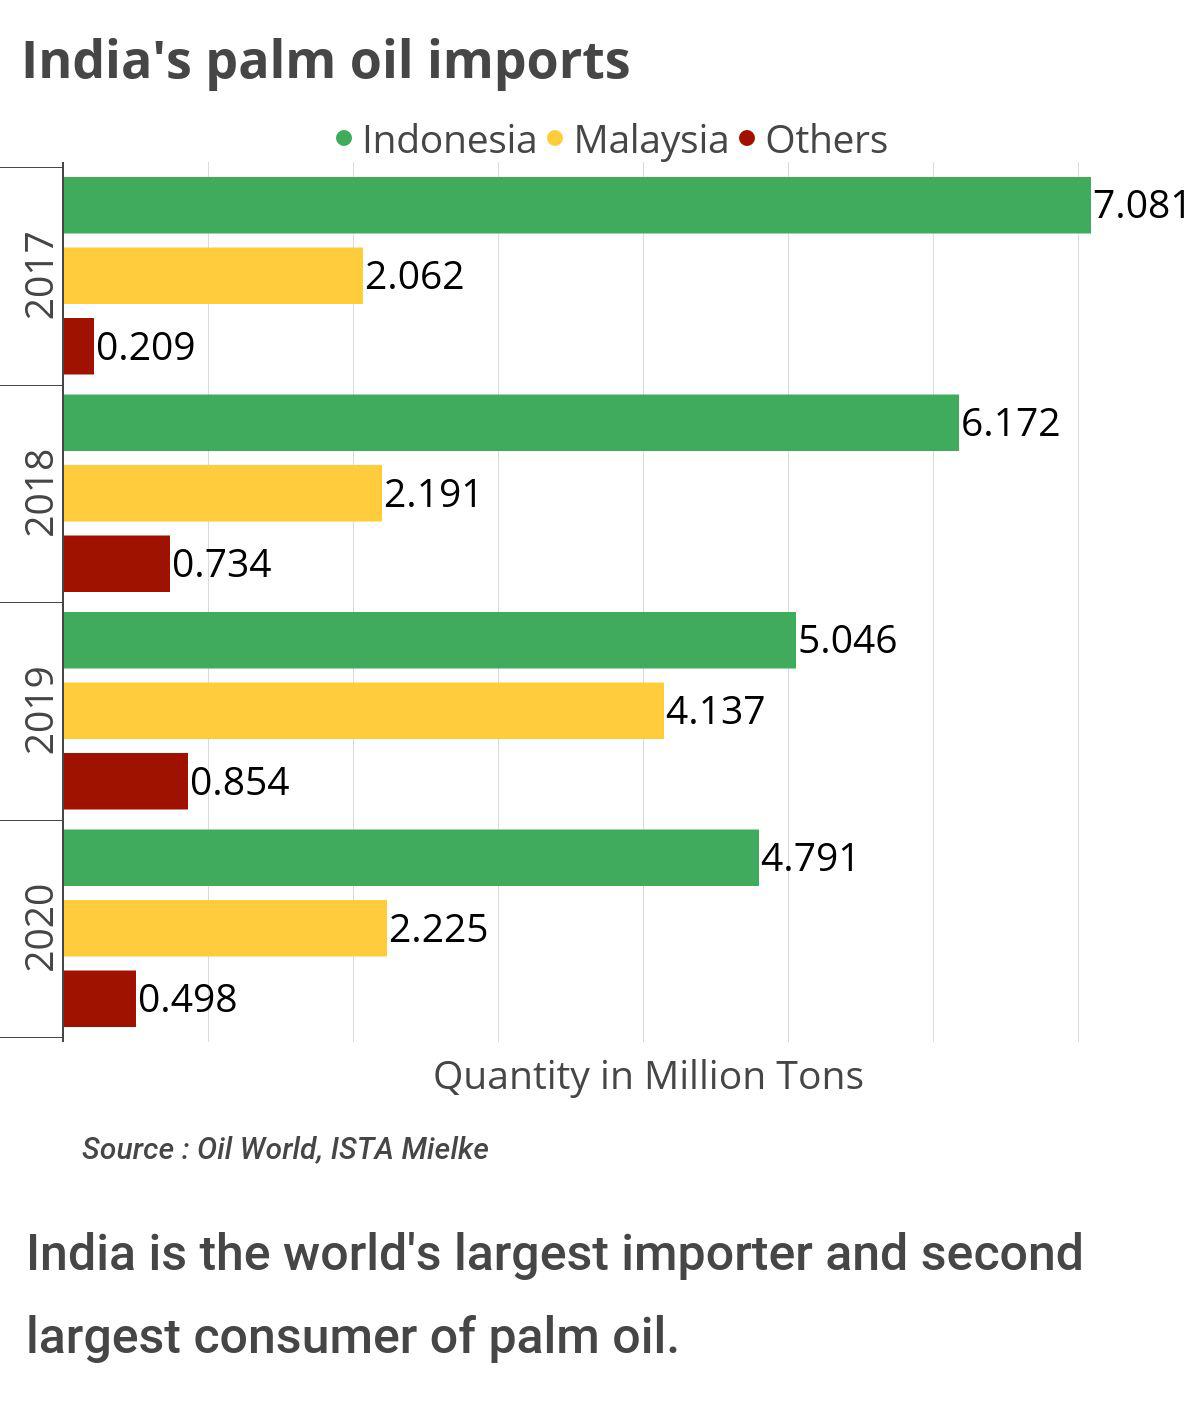 Over 90 percent of the palm oil imported by India comes from Malaysia and Indonesia.